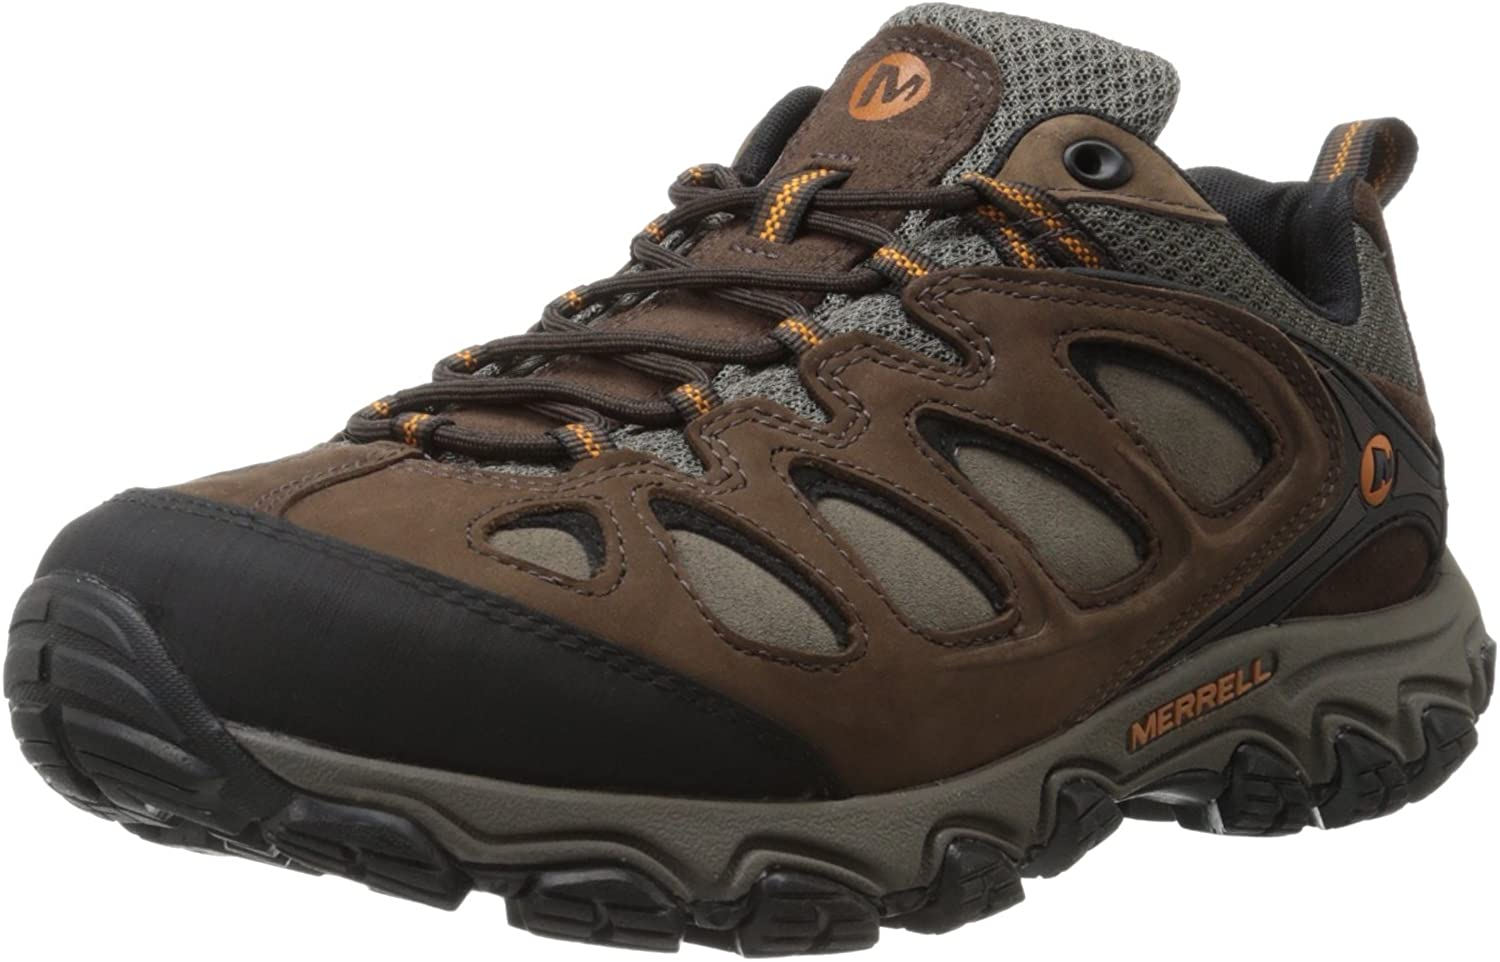 Merrell Men's Pulsate Hiking Shoe